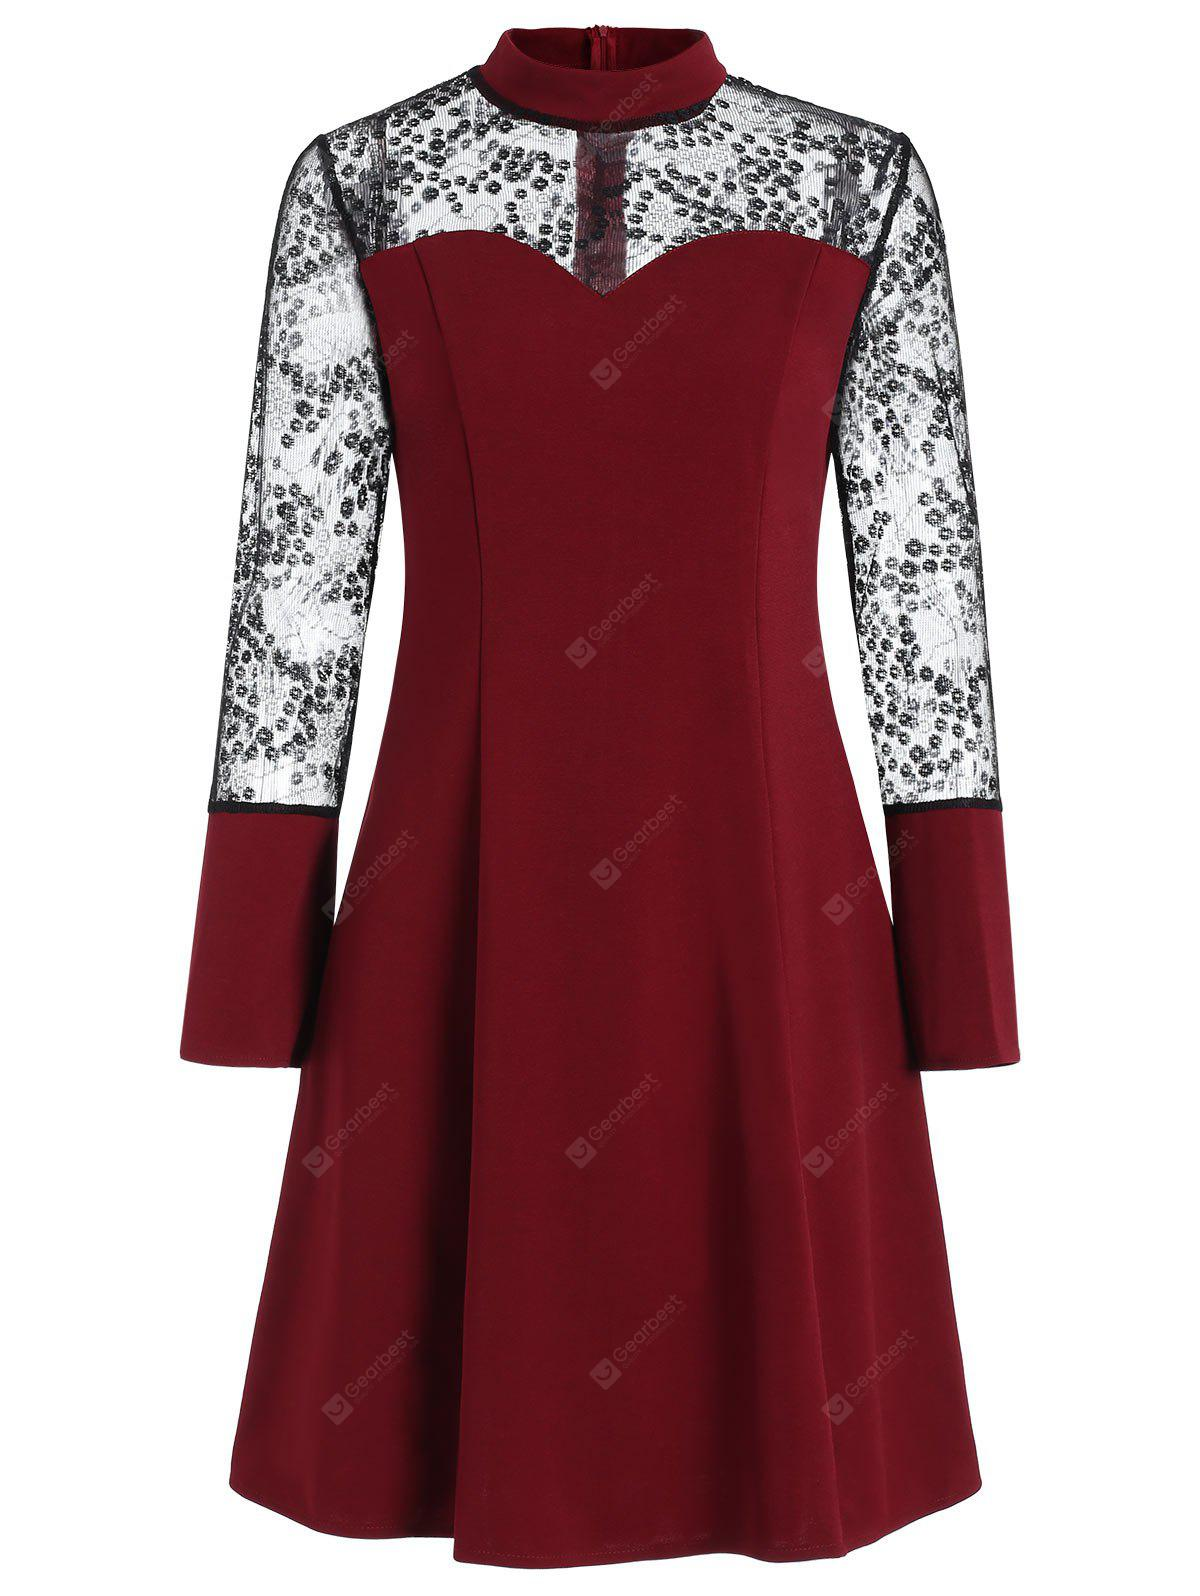 Lace Panel Bell Sleeve High Neck Dress